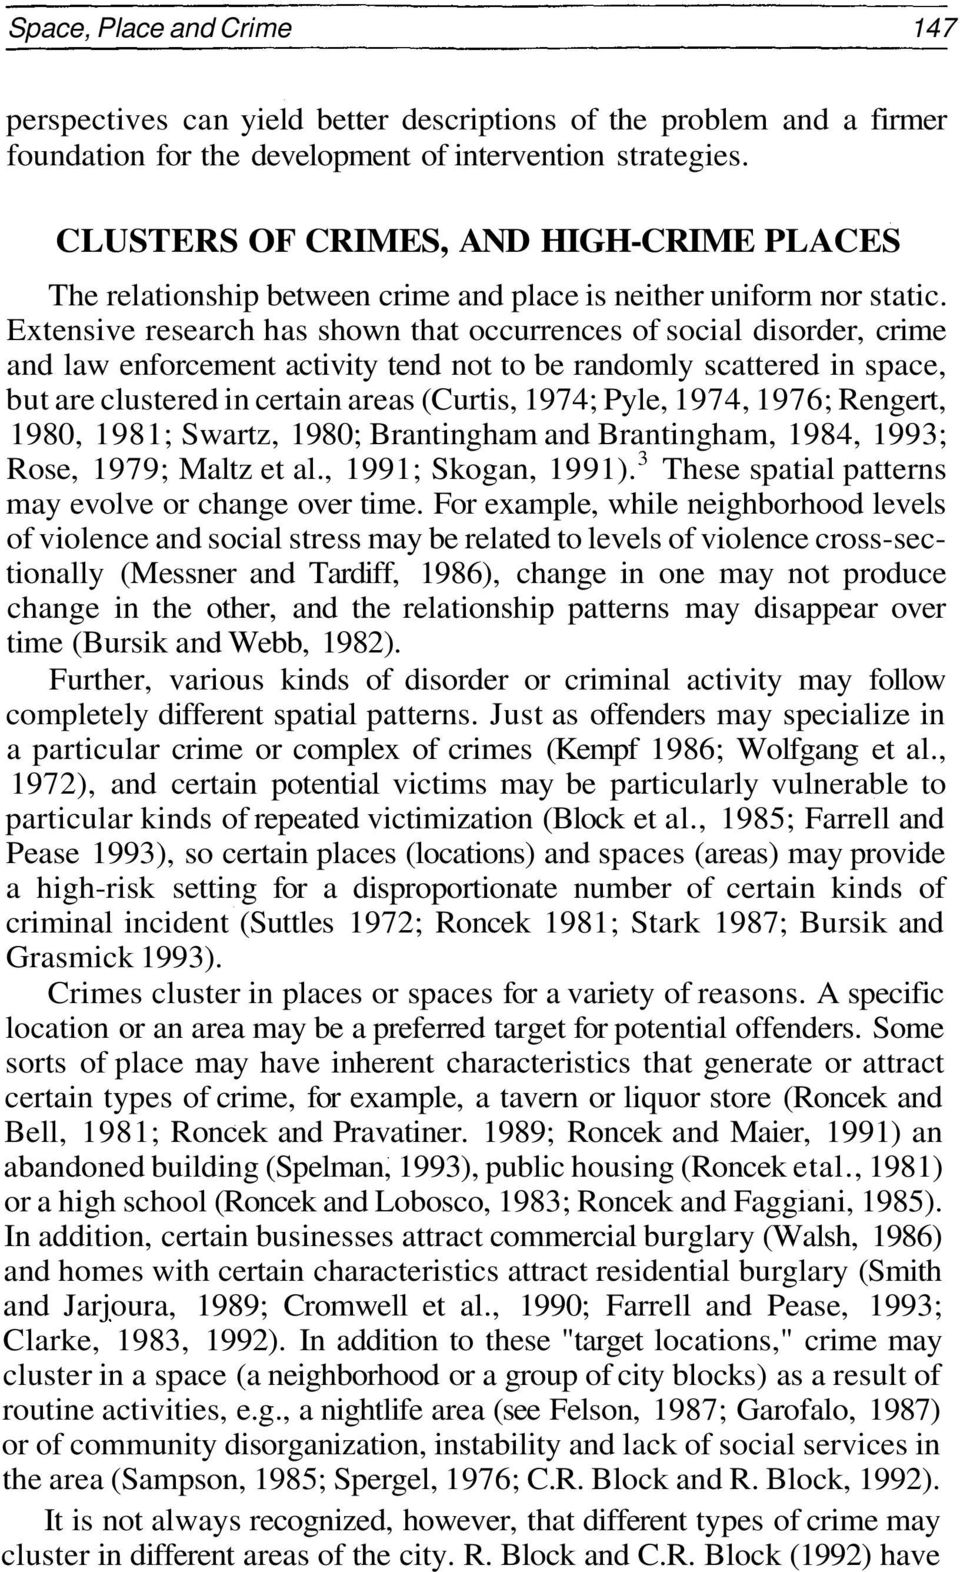 Extensive research has shown that occurrences of social disorder, crime and law enforcement activity tend not to be randomly scattered in space, but are clustered in certain areas (Curtis, 1974;